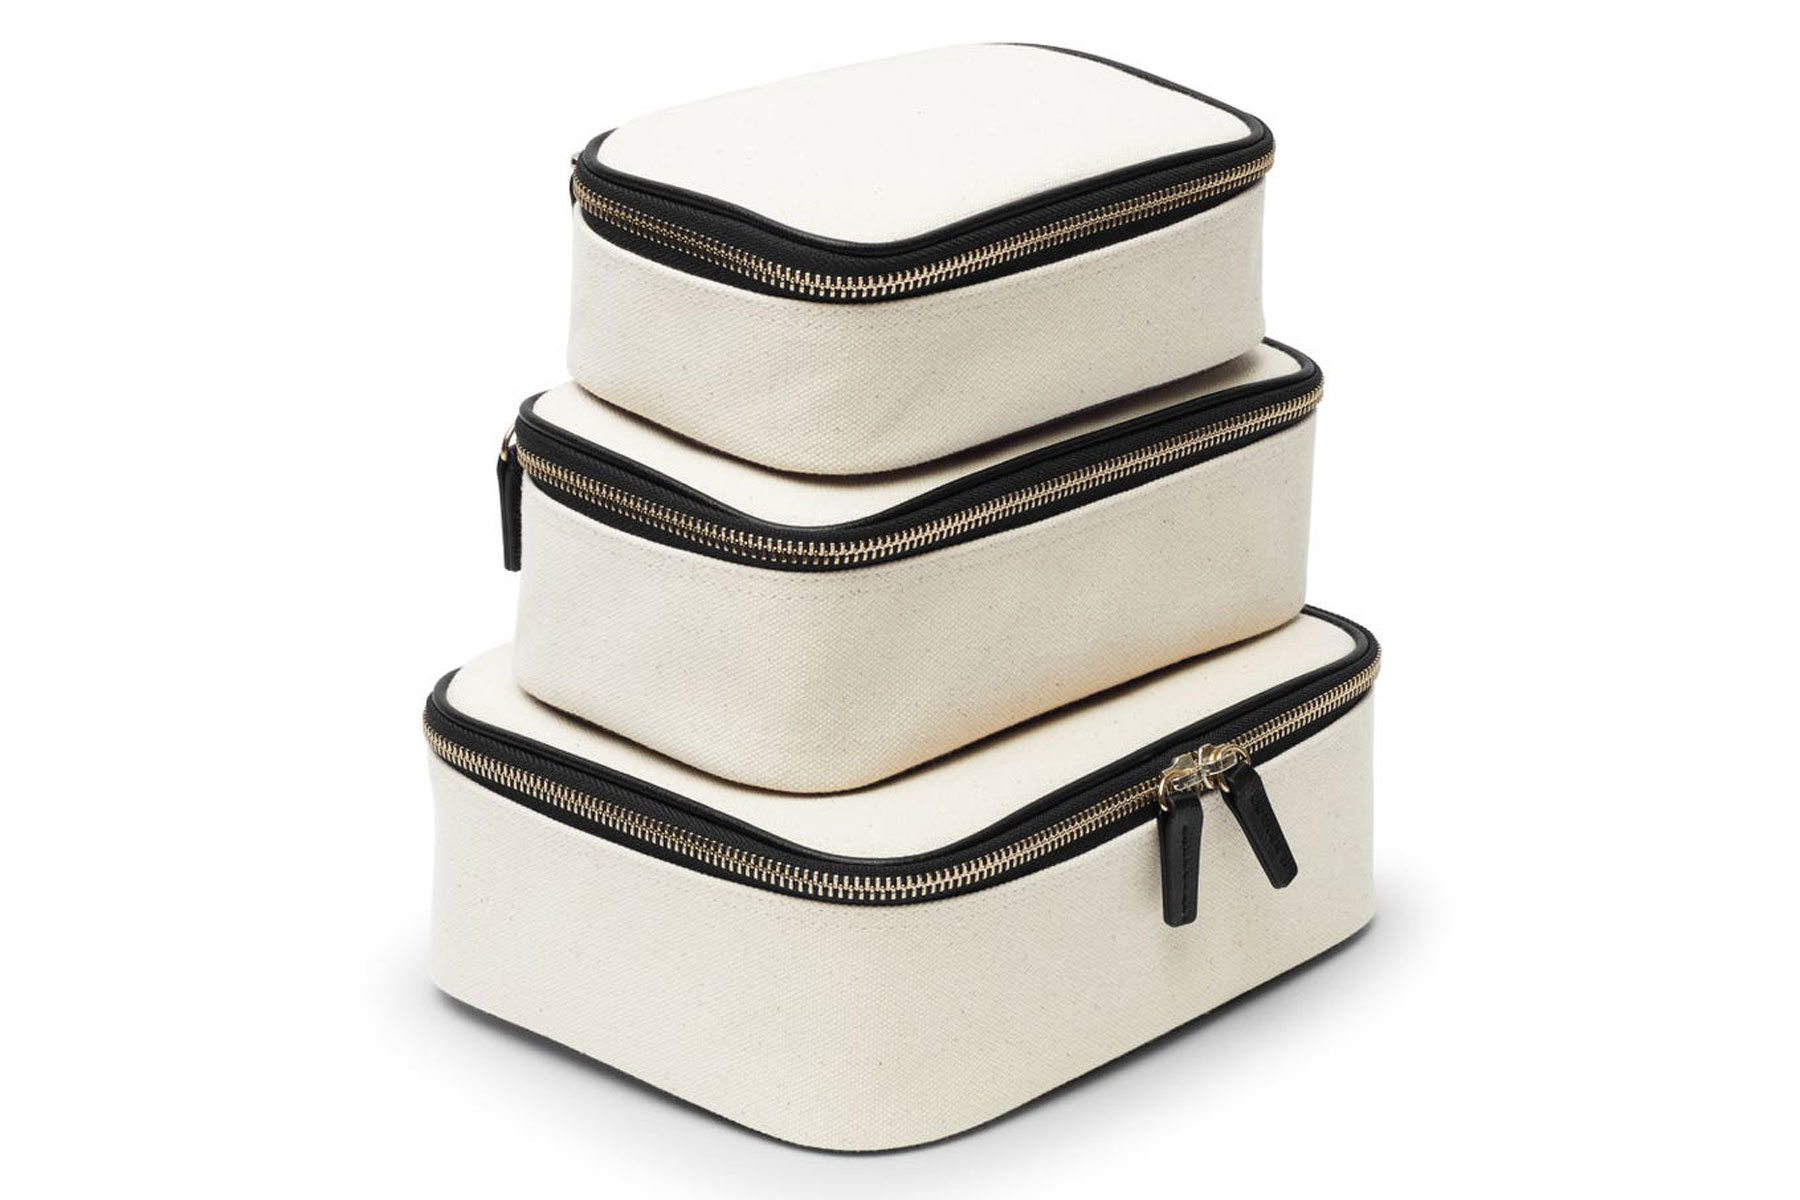 Canvas and leather zippered travel organizers